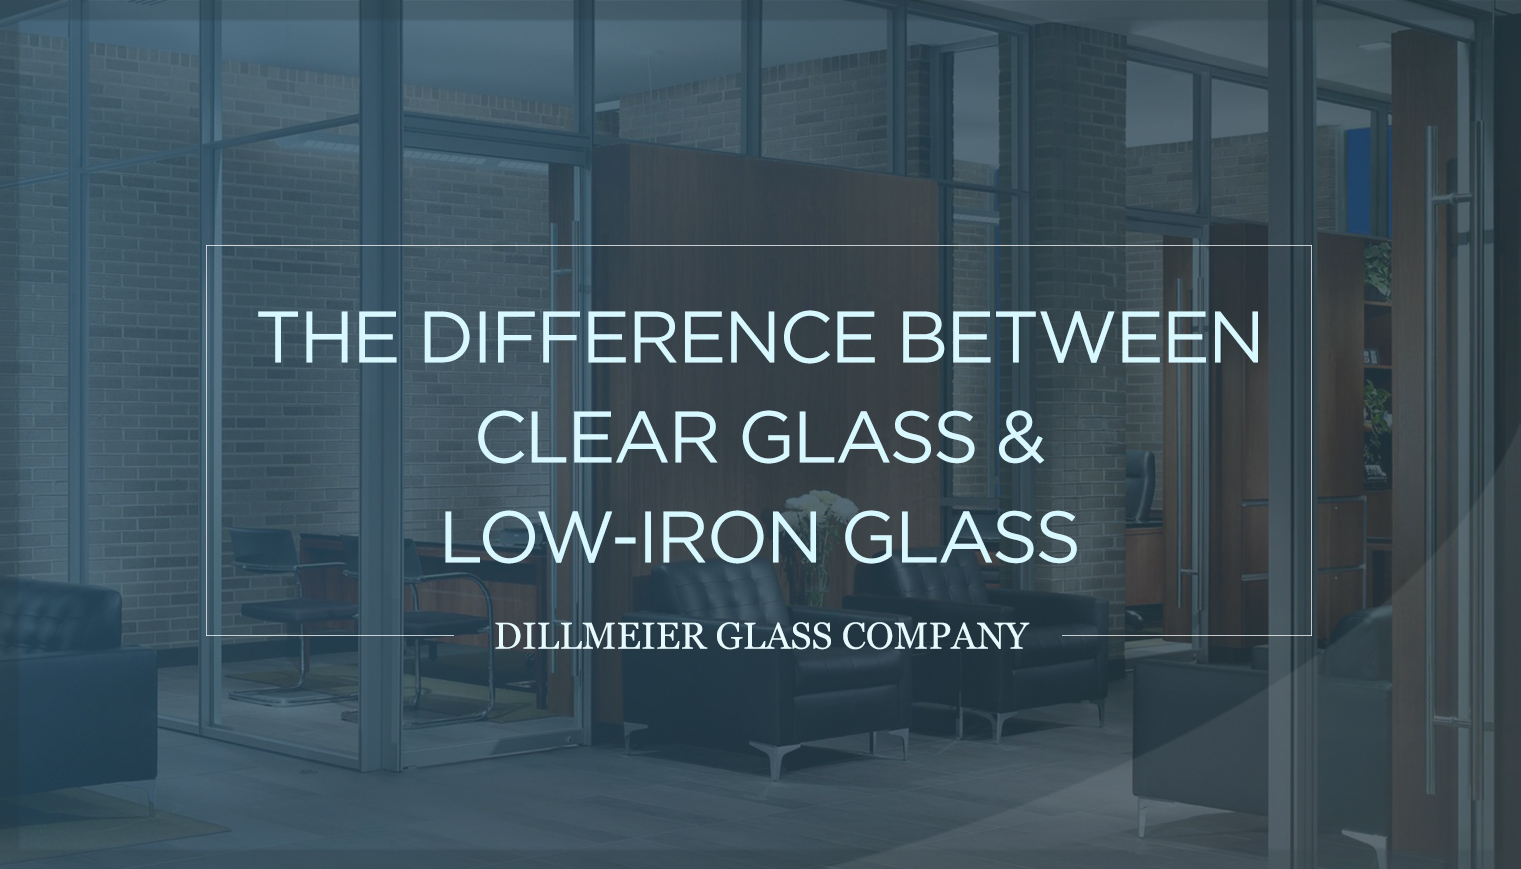 The Difference Between Clear Glass & Low-Iron Glass